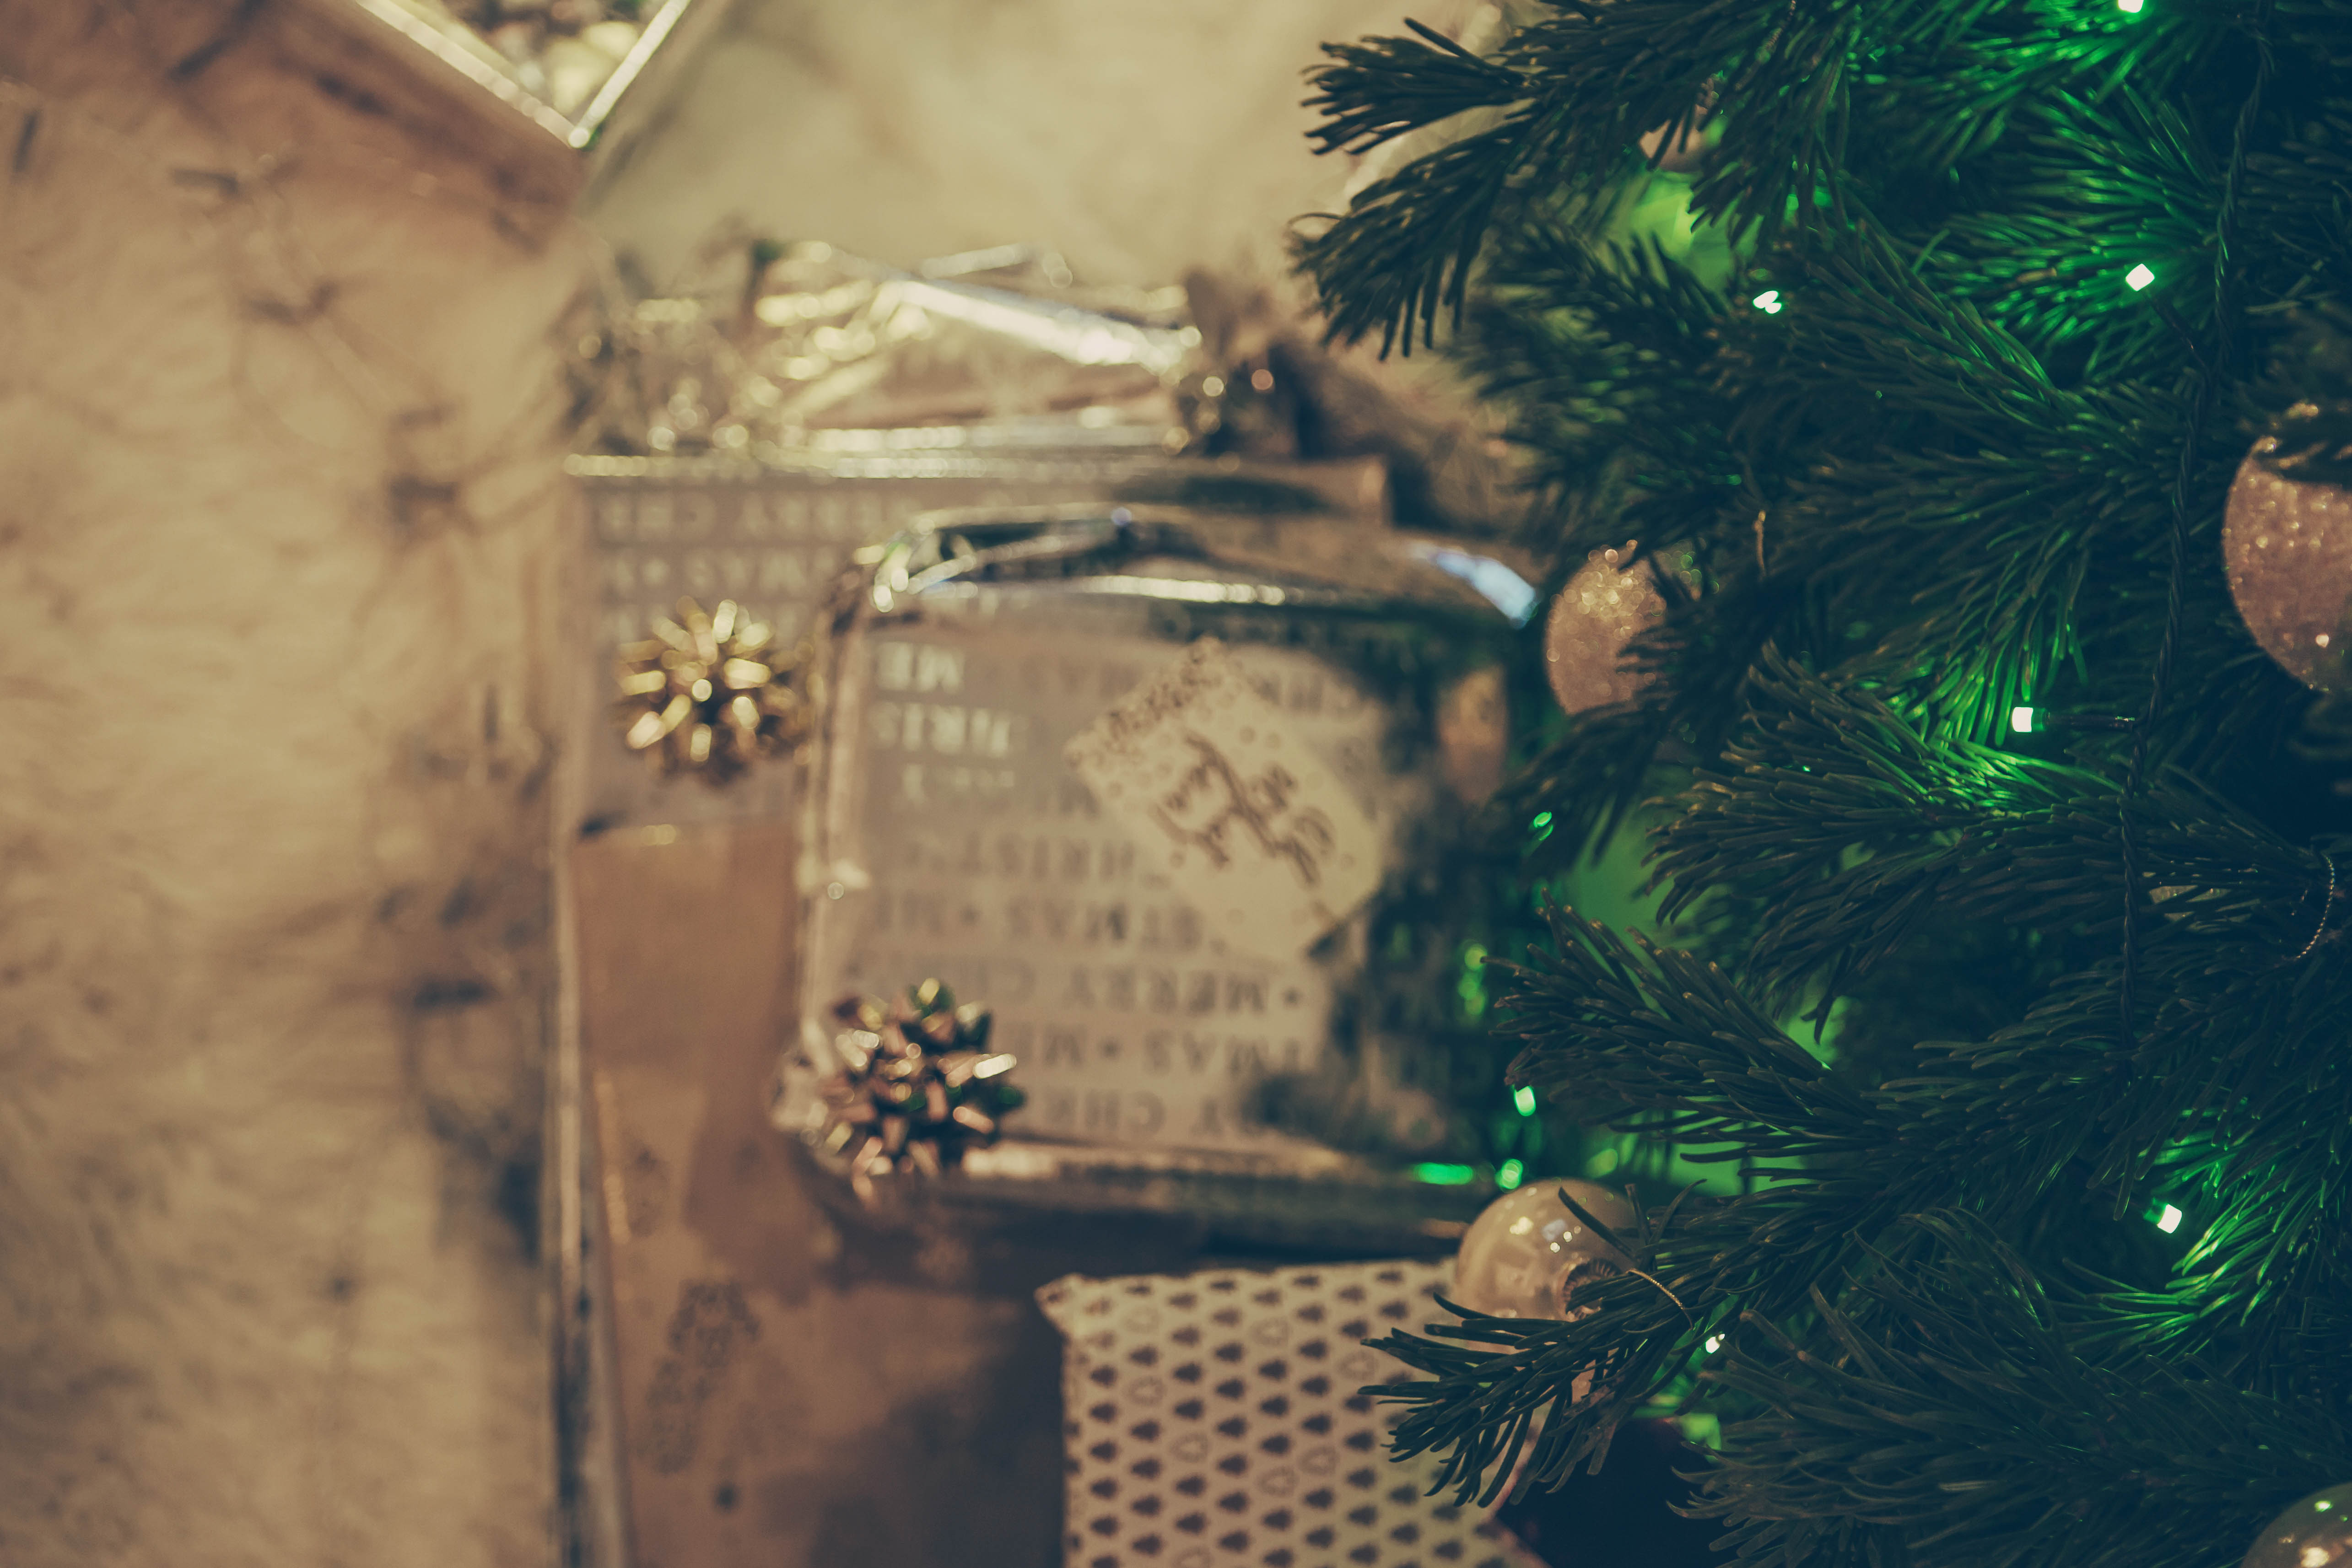 Last minute Christmas gift guide is here for your leisure. It's meant for all of those who have a person in your family or friendship group who are difficult to buy for. I decided to dedicate this post to them, well actually to you as I want to help you out with your decision making.